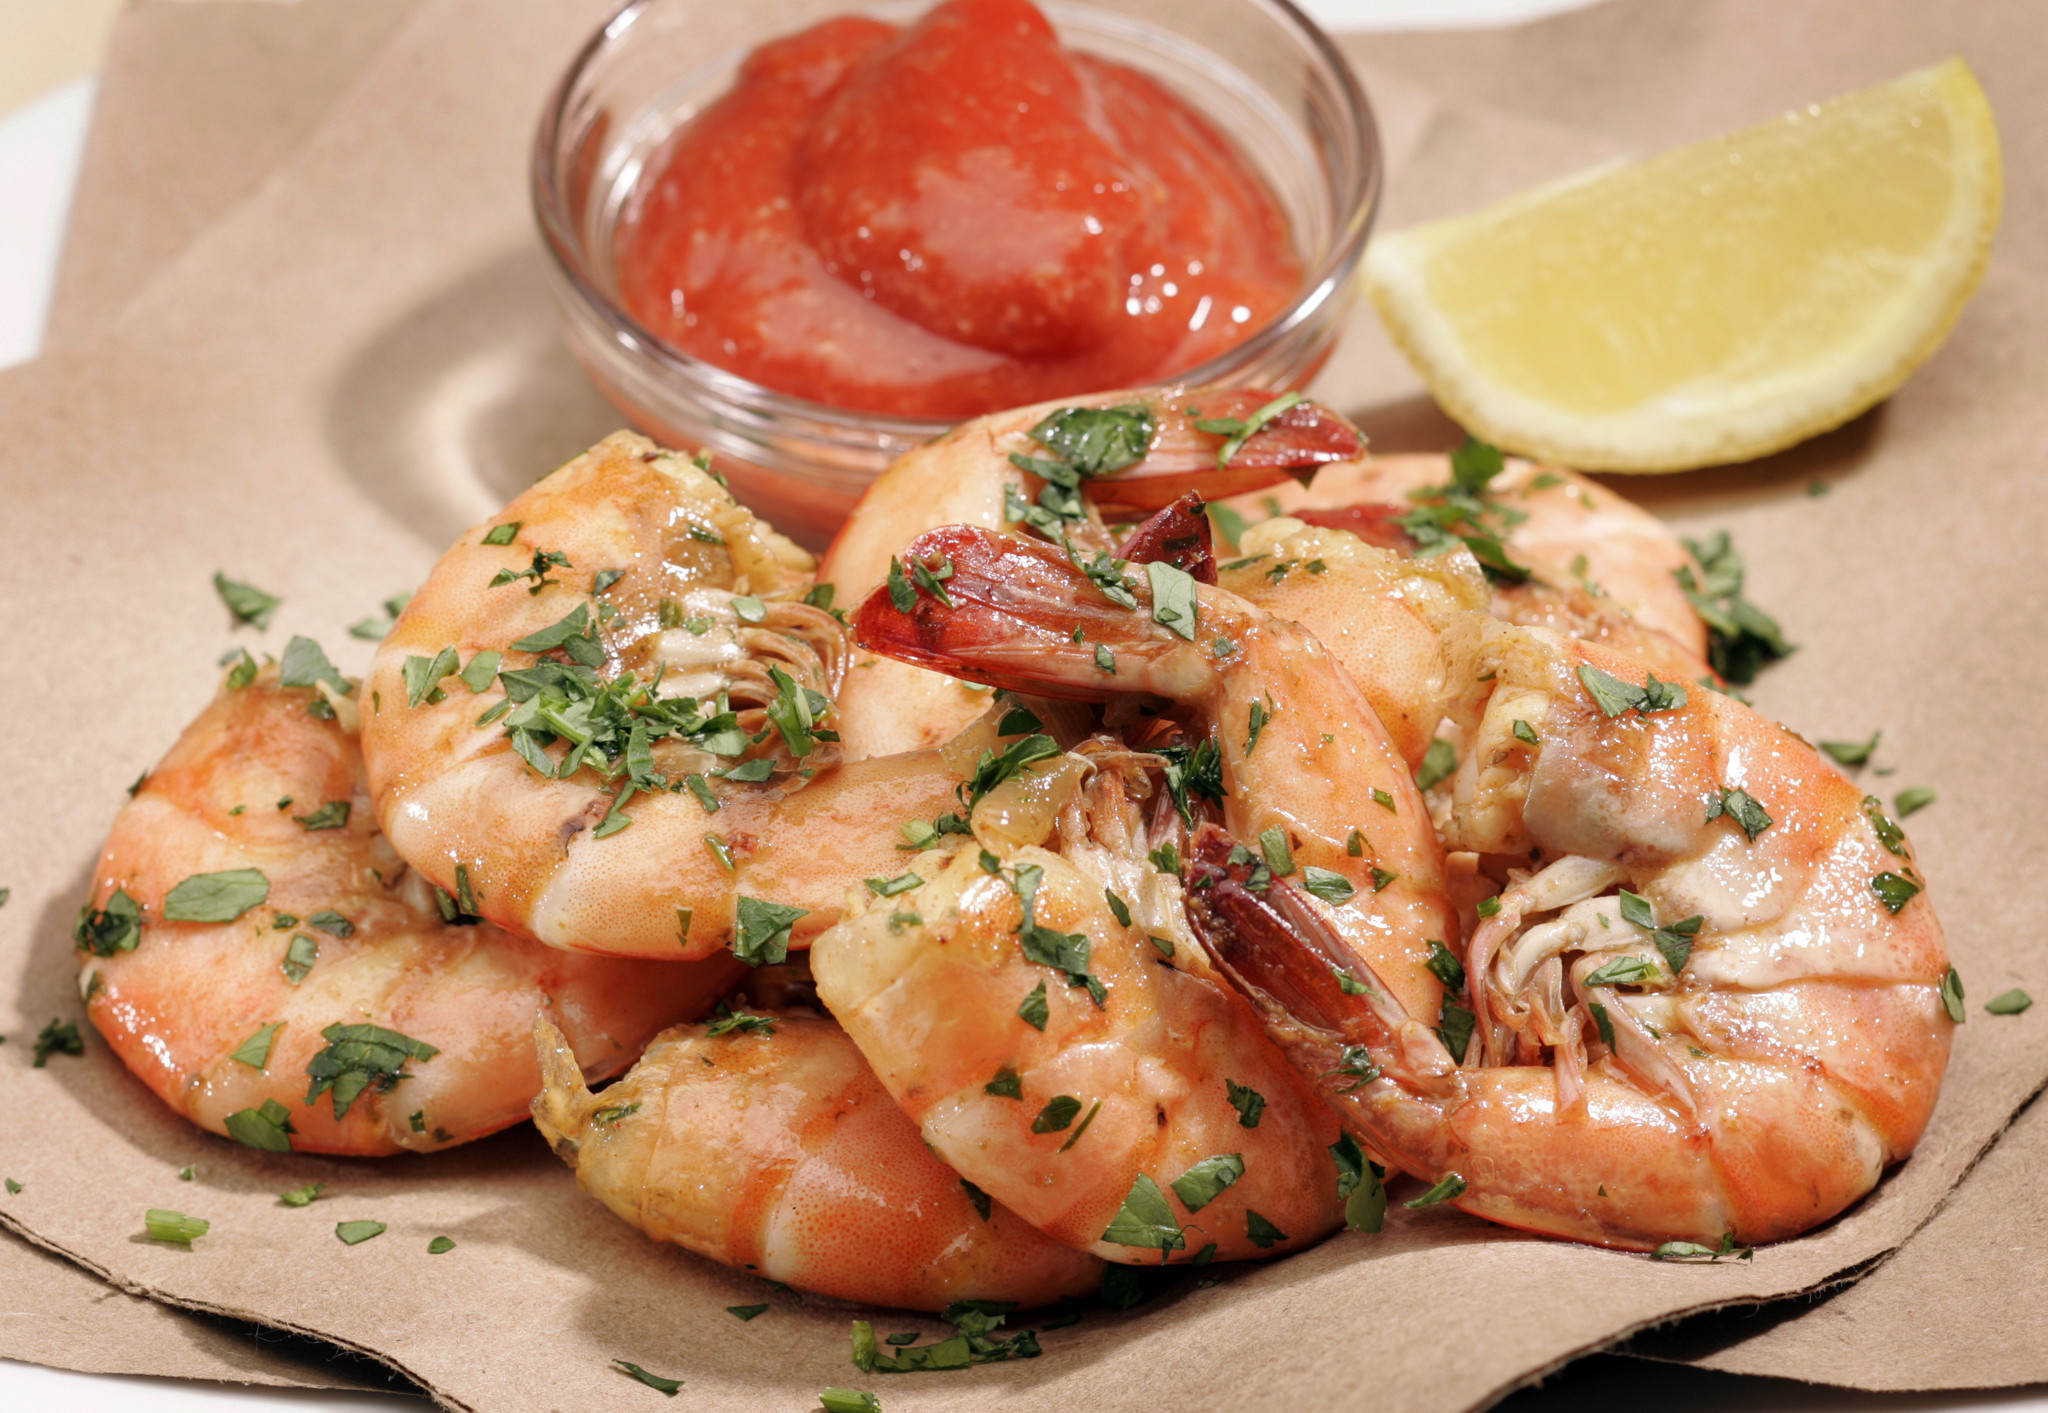 Easy dinner recipes three simple dinner ideas for shrimp What to make with shrimp for dinner